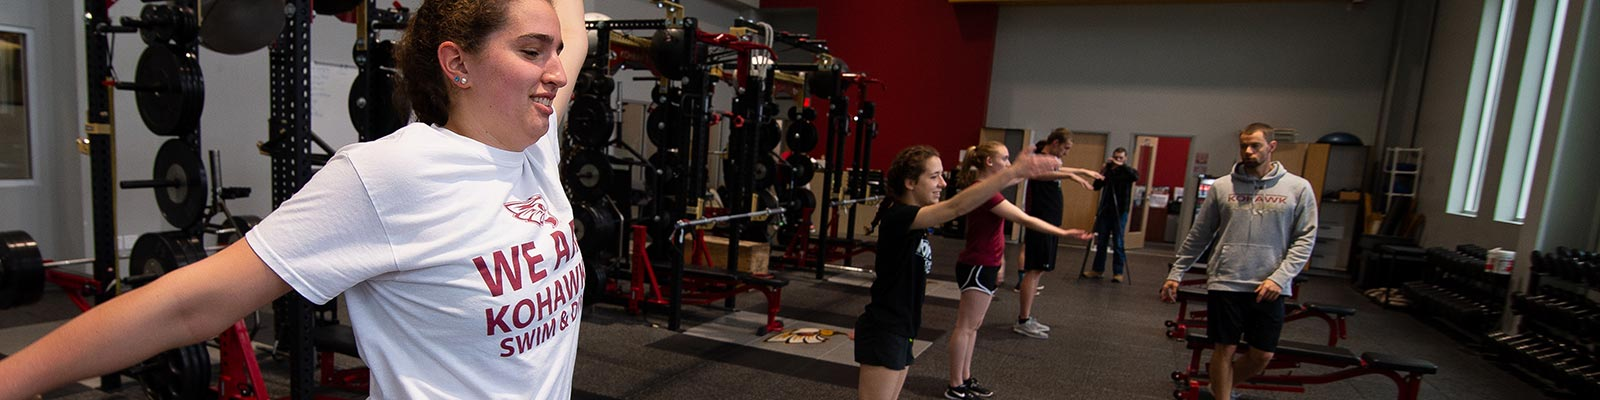 Students working out in fitness center